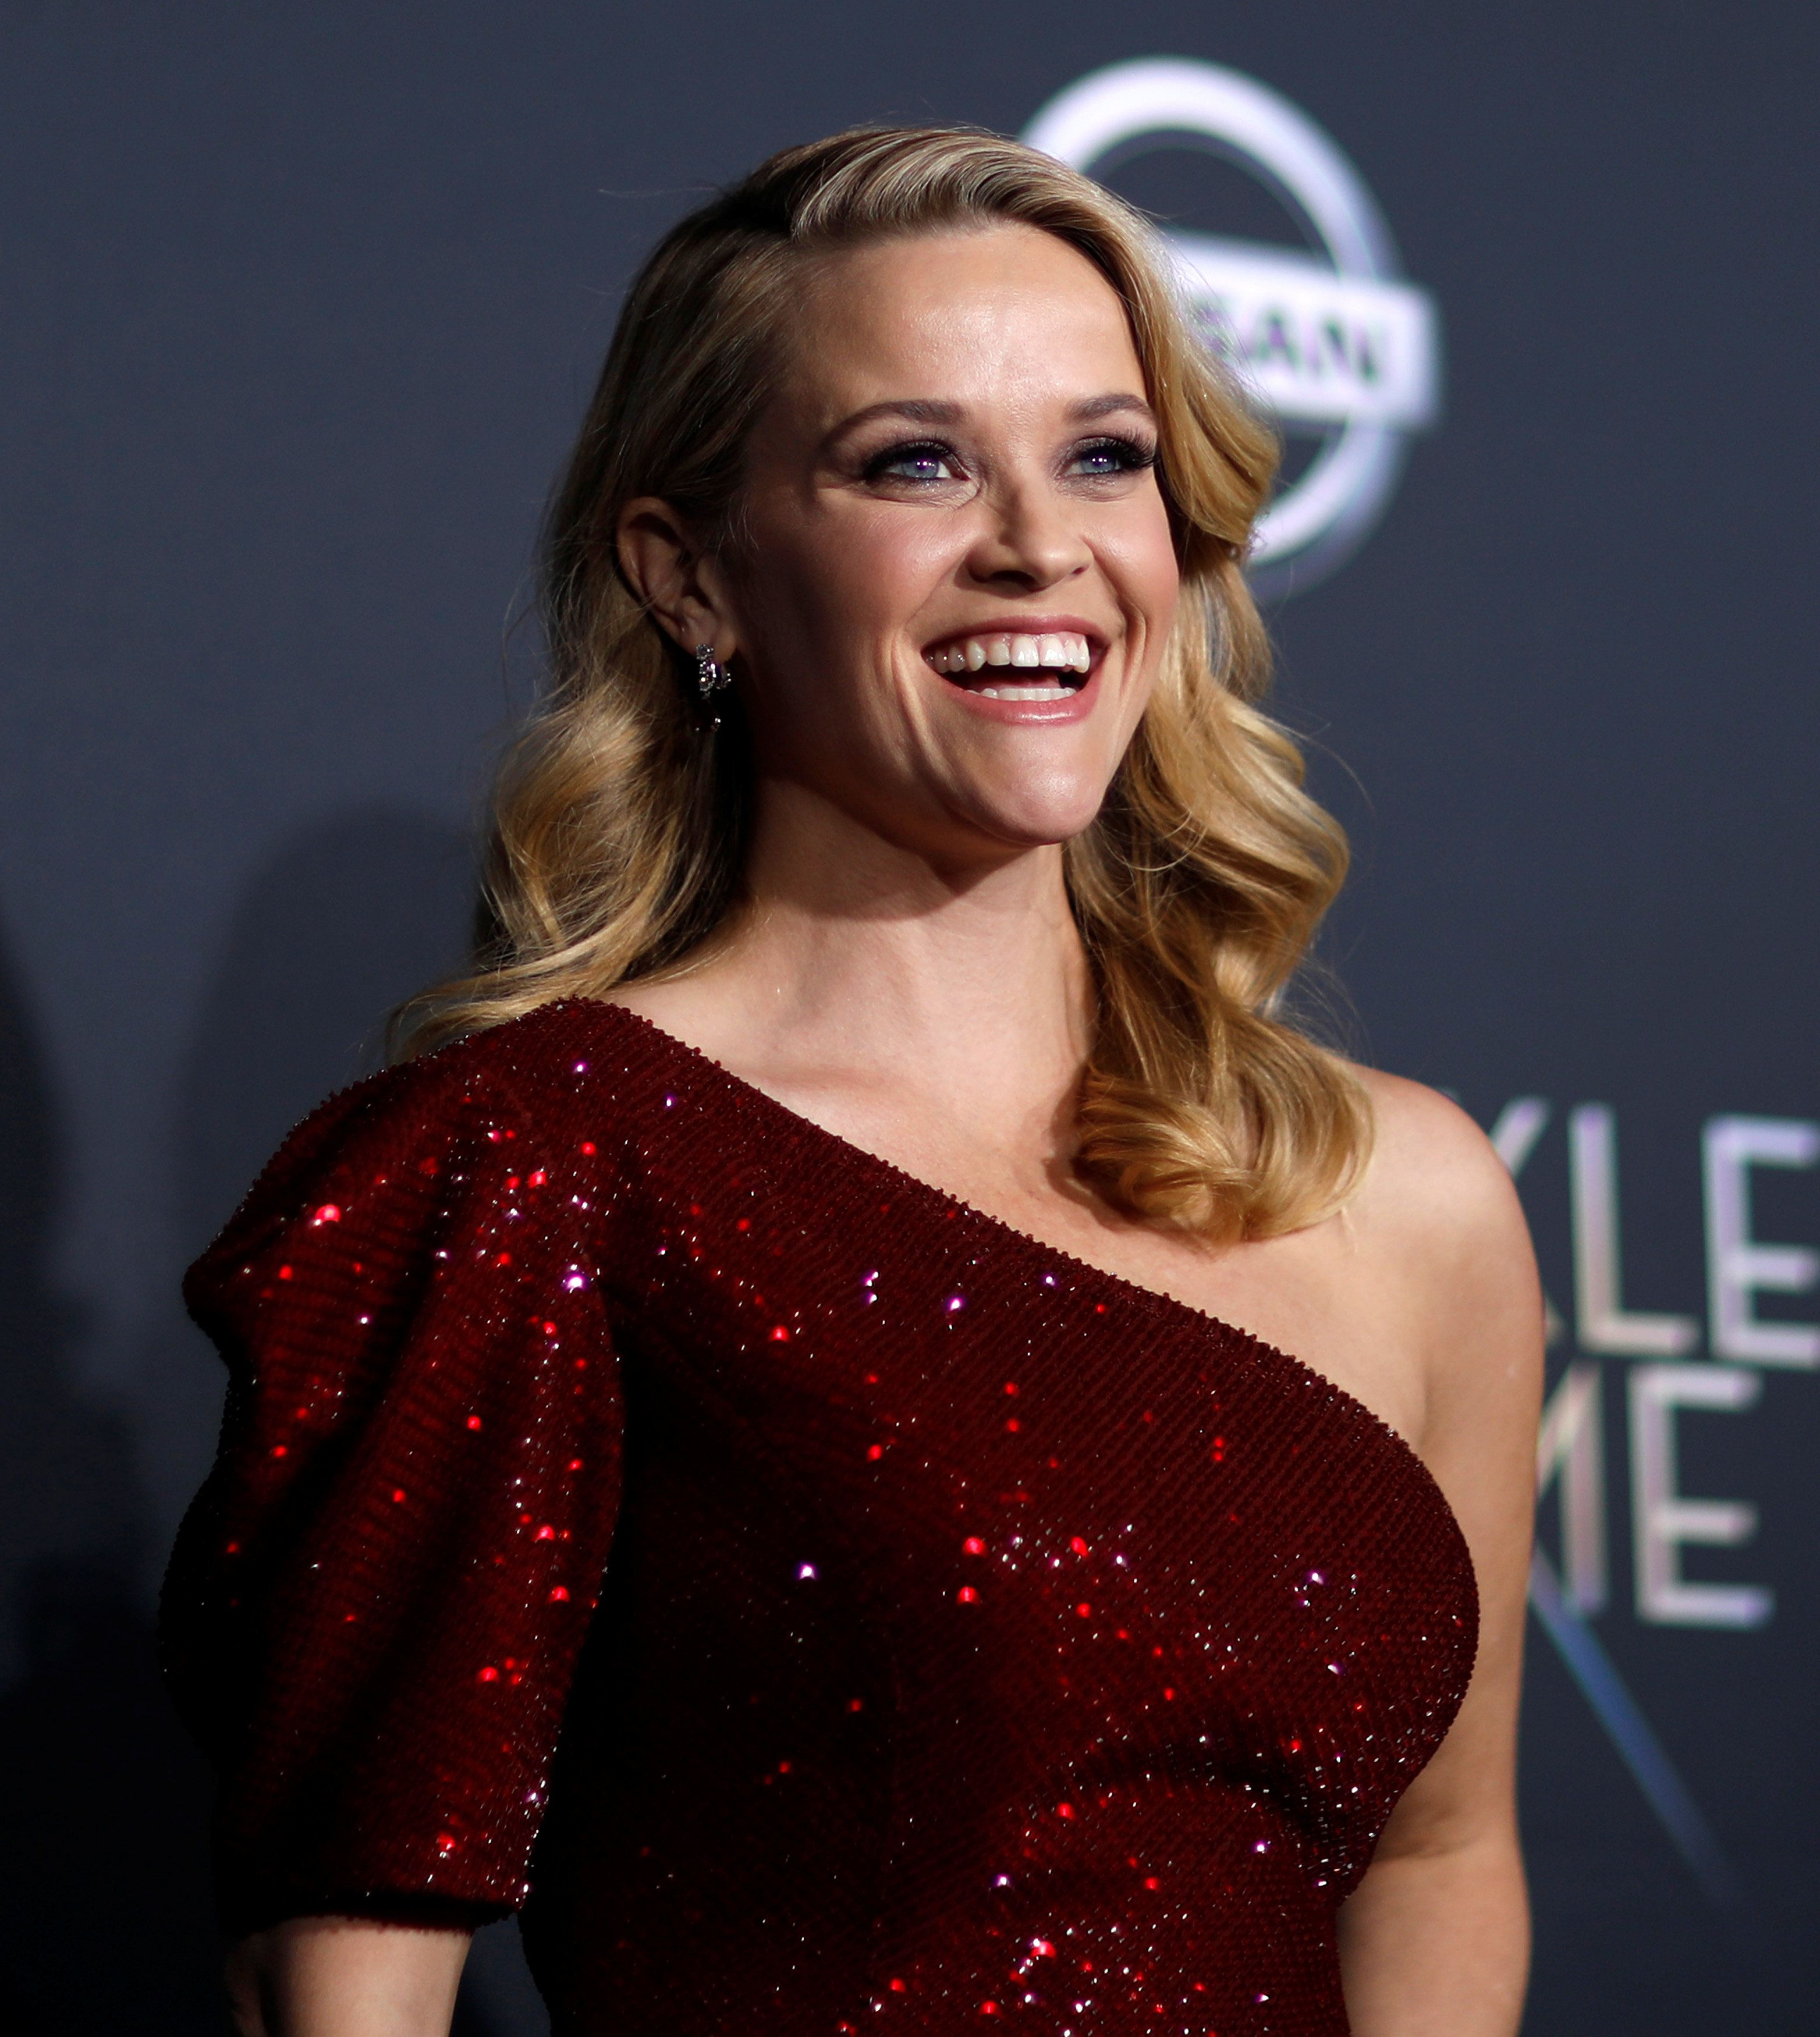 Reese Witherspoon poses at the premiere of